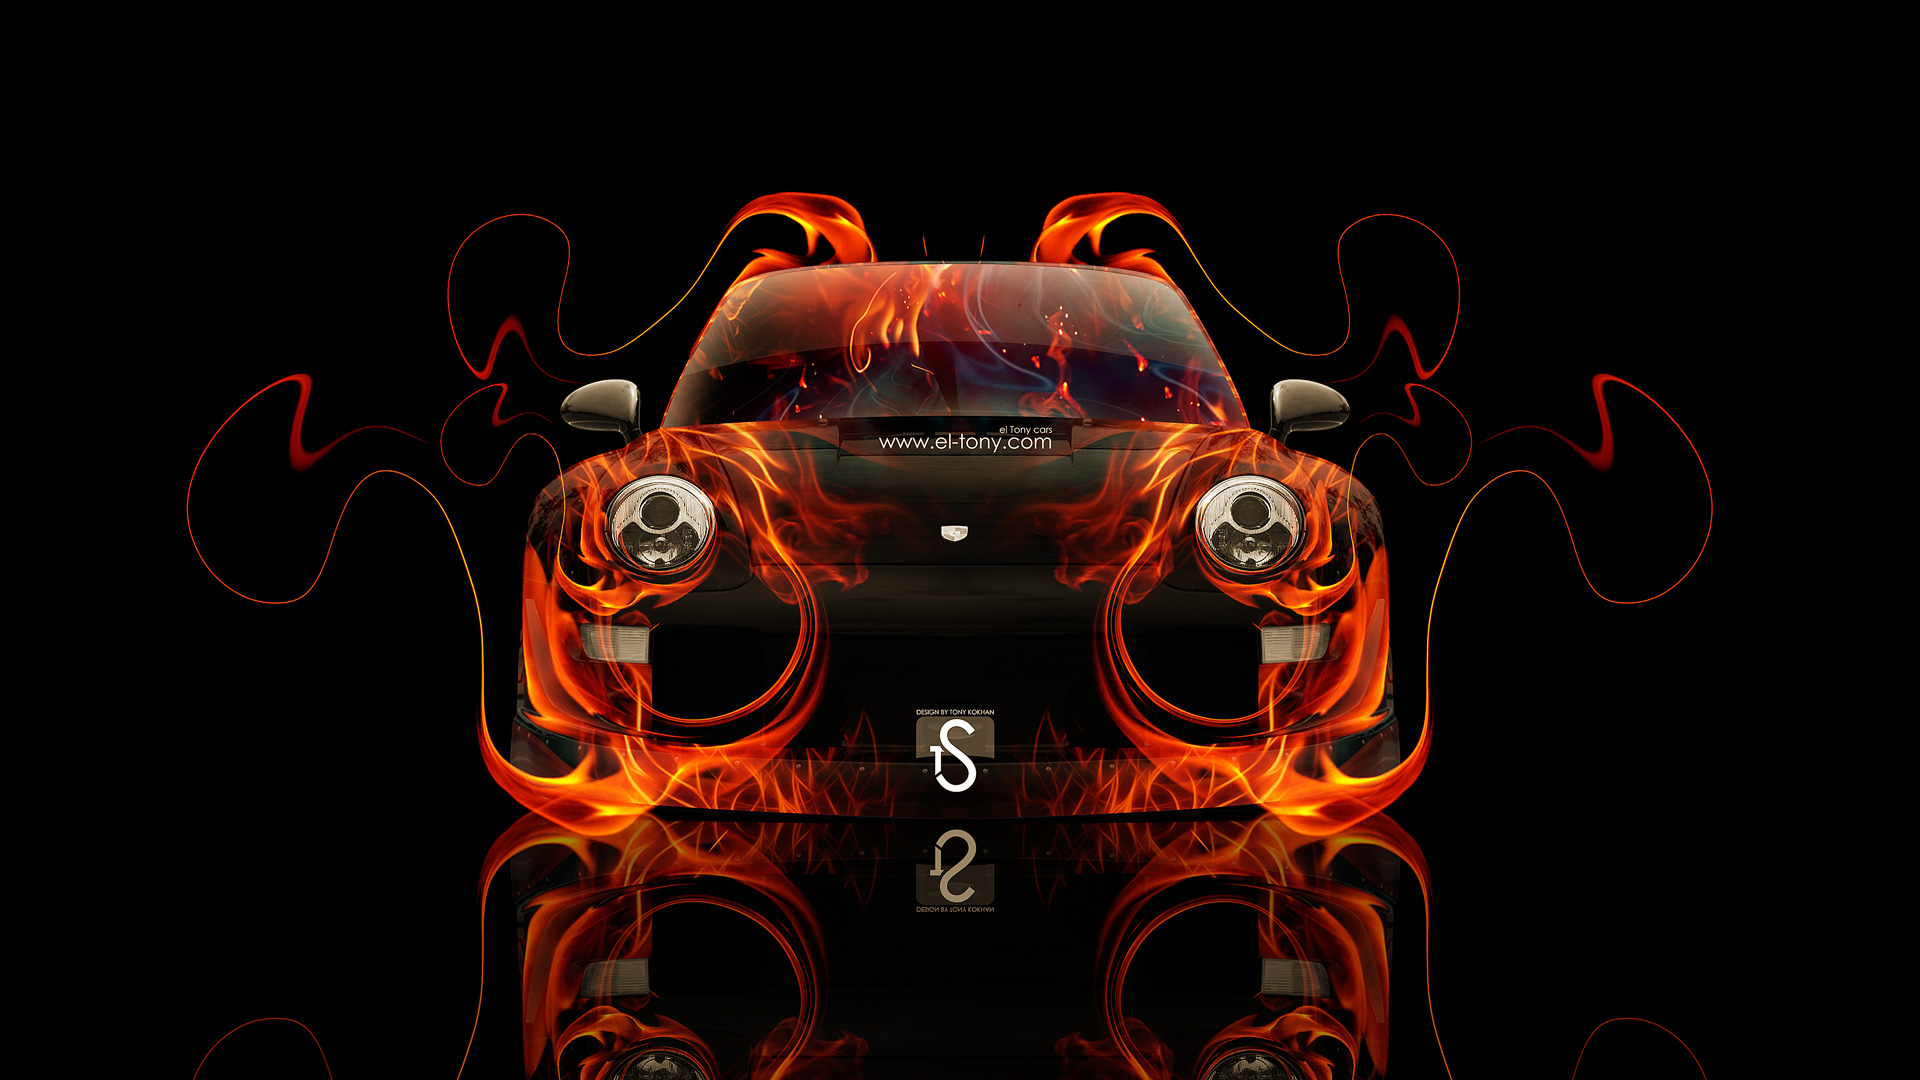 Porsche Fire Abstract Car 2014 HD Wallpapers Design .